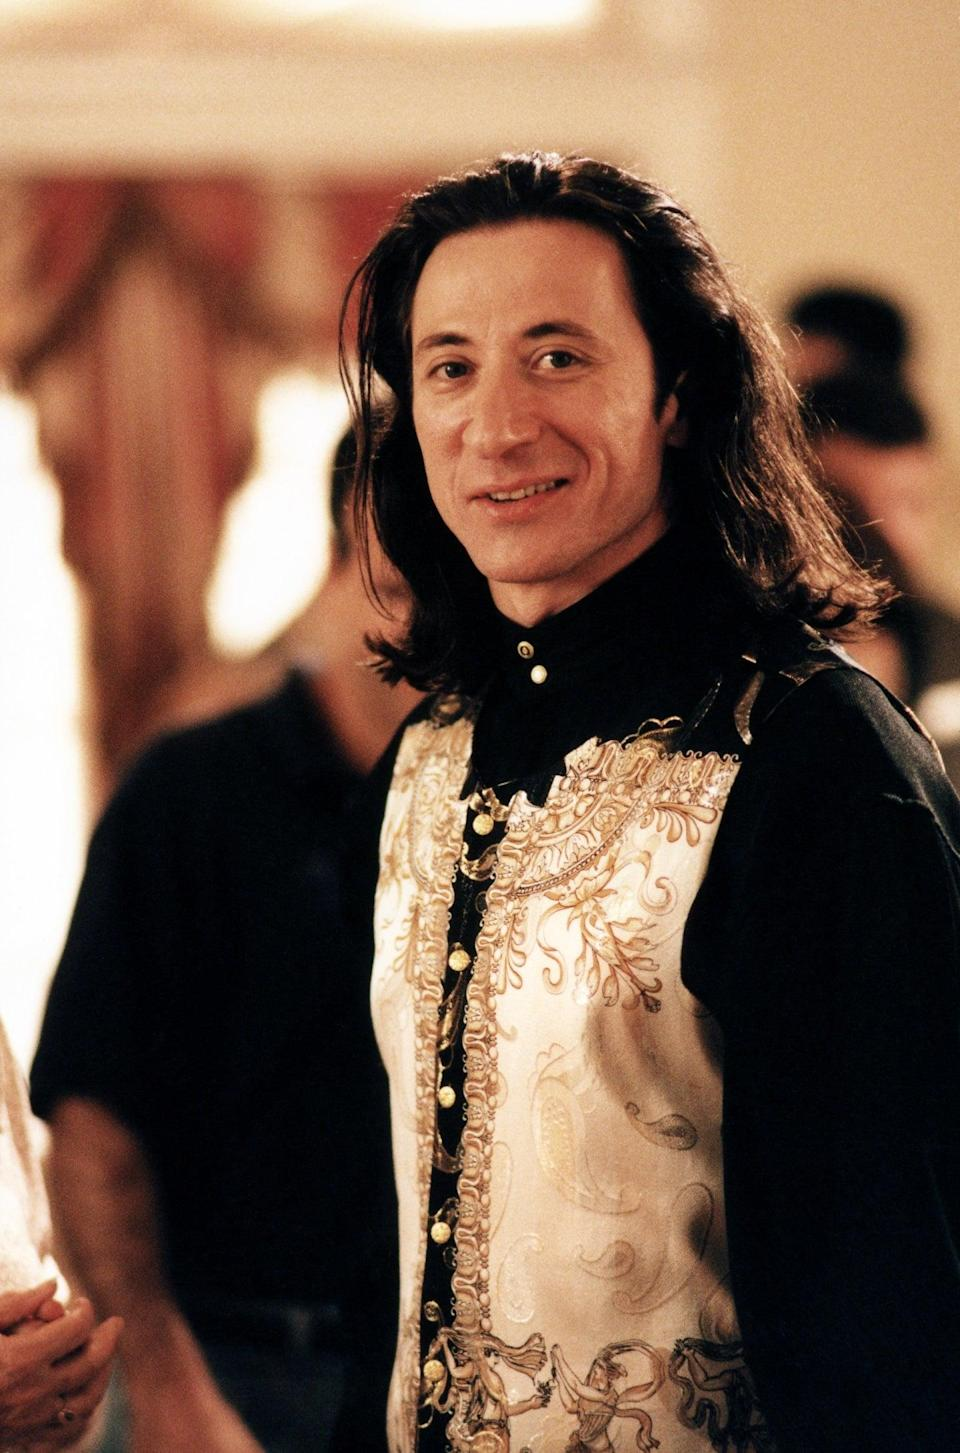 """<p>As an Italian immigrant, Furio's personal style differs from his New Jersey-born family. While his mob counterparts favor a more mainstream, American wardrobe - bowling shirts, neutral color palettes, gold jewelry galore - Furio opts for Versace silk blouses and flowy Fabio-esque hair, influenced by his Italian roots. His distinct, Euro-flair look, paired with his thick accent, makes Furio stand out among the group, and later, catch the eyes of the boss's wife. Now we're seeing a resurgence of luxury Italian brands come to the limelight. While on vacation in Italy, Kylie Jenner wore <a href=""""https://www.popsugar.com/fashion/Kylie-Jenner-Versace-Outfit-Gold-Bottega-Veneta-Sandals-46480348"""" class=""""link rapid-noclick-resp"""" rel=""""nofollow noopener"""" target=""""_blank"""" data-ylk=""""slk:Versace head-to-toe"""">Versace head-to-toe</a> and <a class=""""link rapid-noclick-resp"""" href=""""https://www.popsugar.com/Taylor-Swift"""" rel=""""nofollow noopener"""" target=""""_blank"""" data-ylk=""""slk:Taylor Swift"""">Taylor Swift</a> stepped onto the Teen Choice Awards blue carpet in a <a href=""""https://www.popsugar.com/fashion/Taylor-Swift-Outfit-Teen-Choice-Awards-2019-46487855"""" class=""""link rapid-noclick-resp"""" rel=""""nofollow noopener"""" target=""""_blank"""" data-ylk=""""slk:three-piece Versace suit"""">three-piece Versace suit</a>.</p>"""